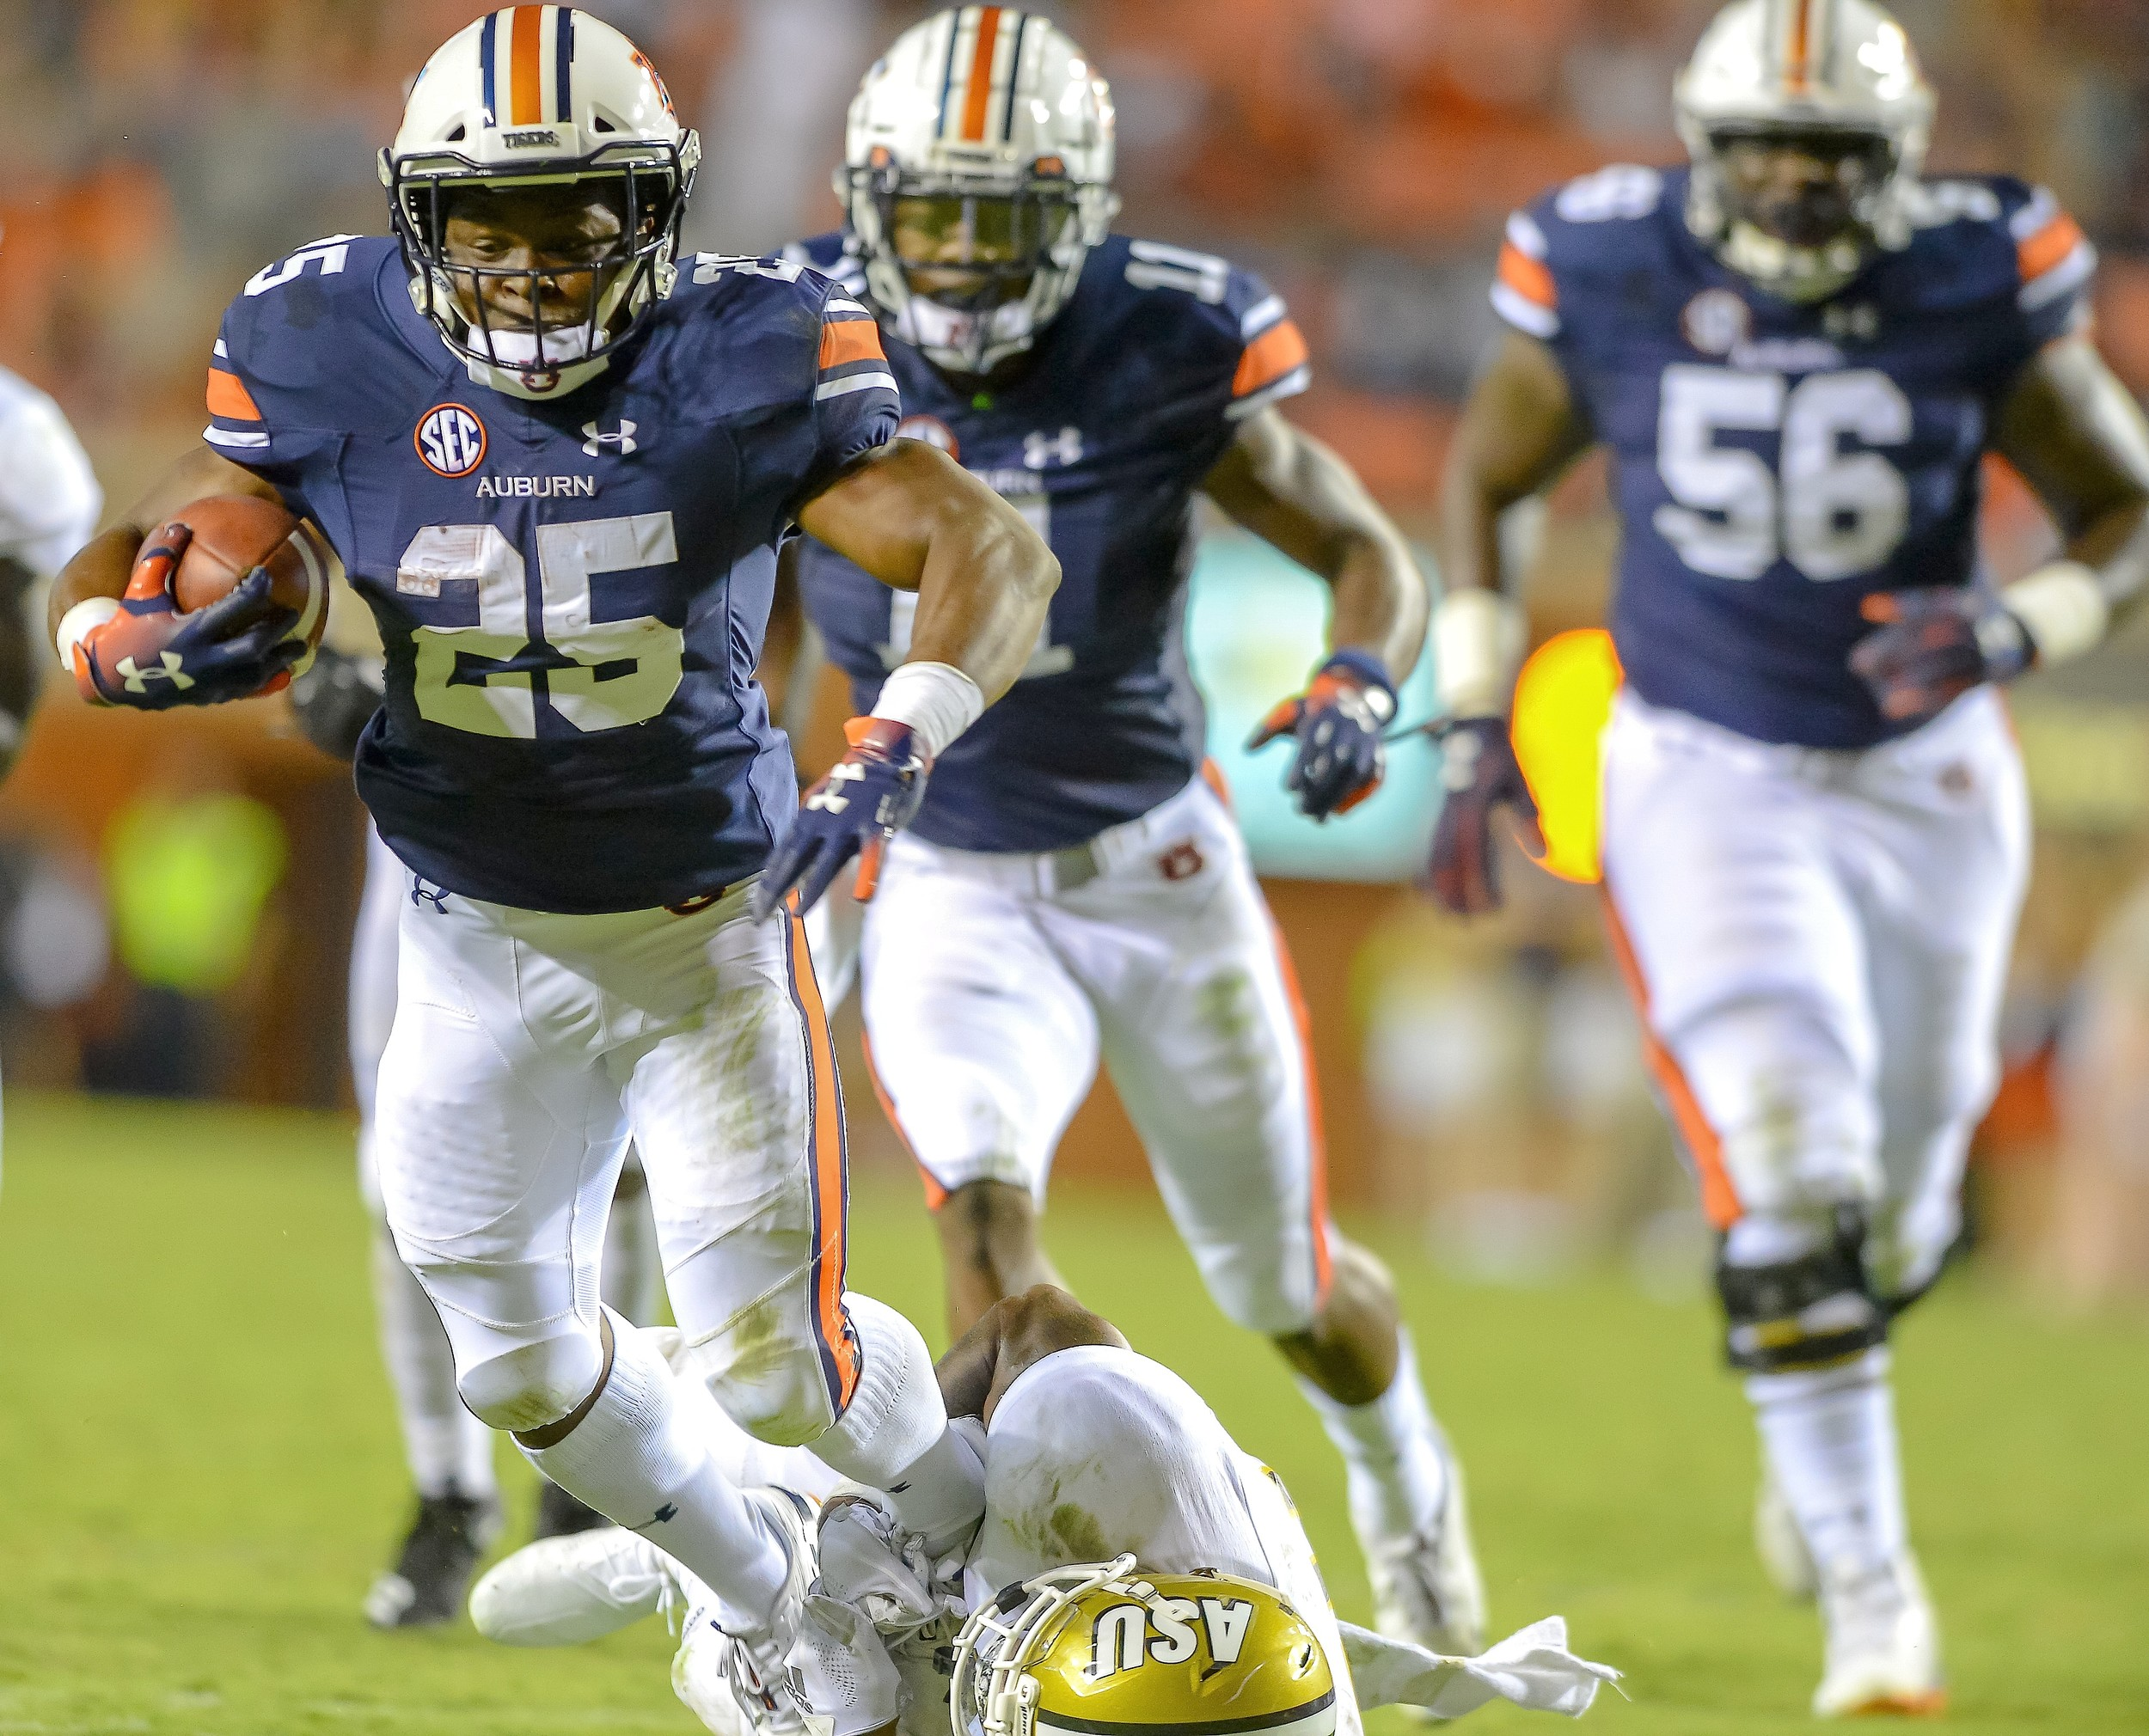 Auburn's Shaun Shivers (25) runs during the second half of Saturday's game against Alabama State at Jordan Hare Stadium. The Tigers won their home opener 63-9.